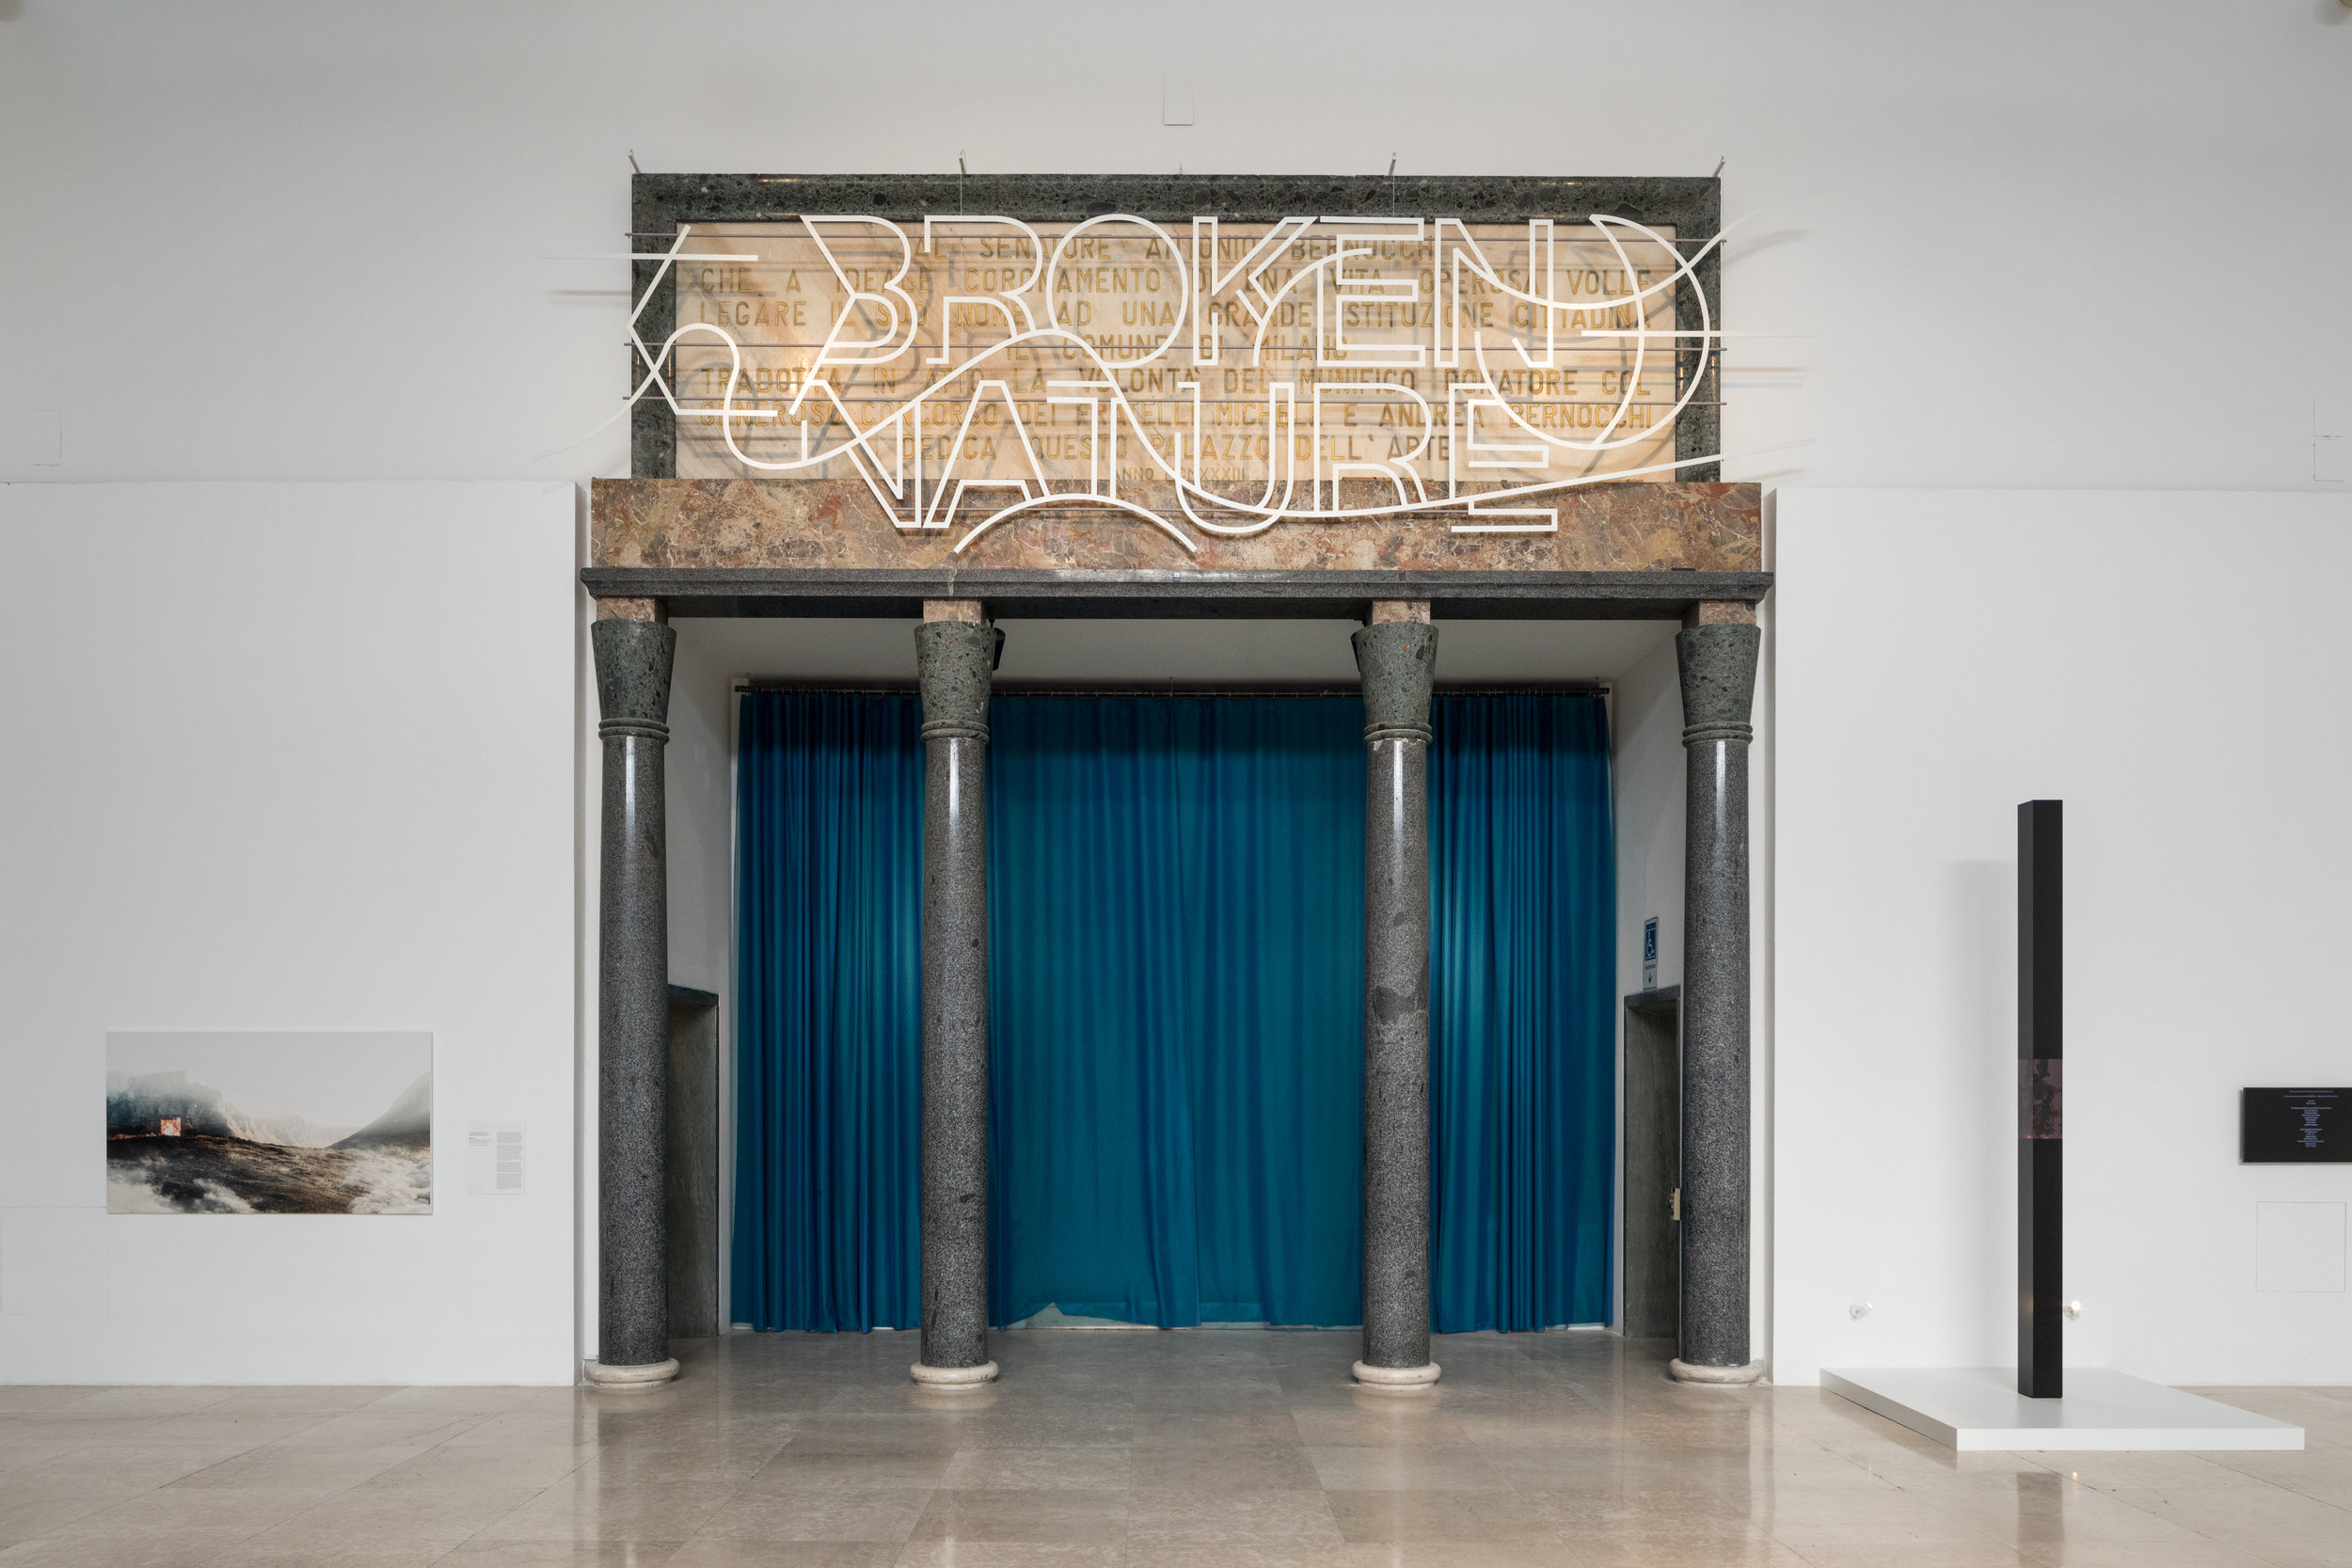 The Broken Nature exhibition in Milan includes multiple examples of projects related to this theme